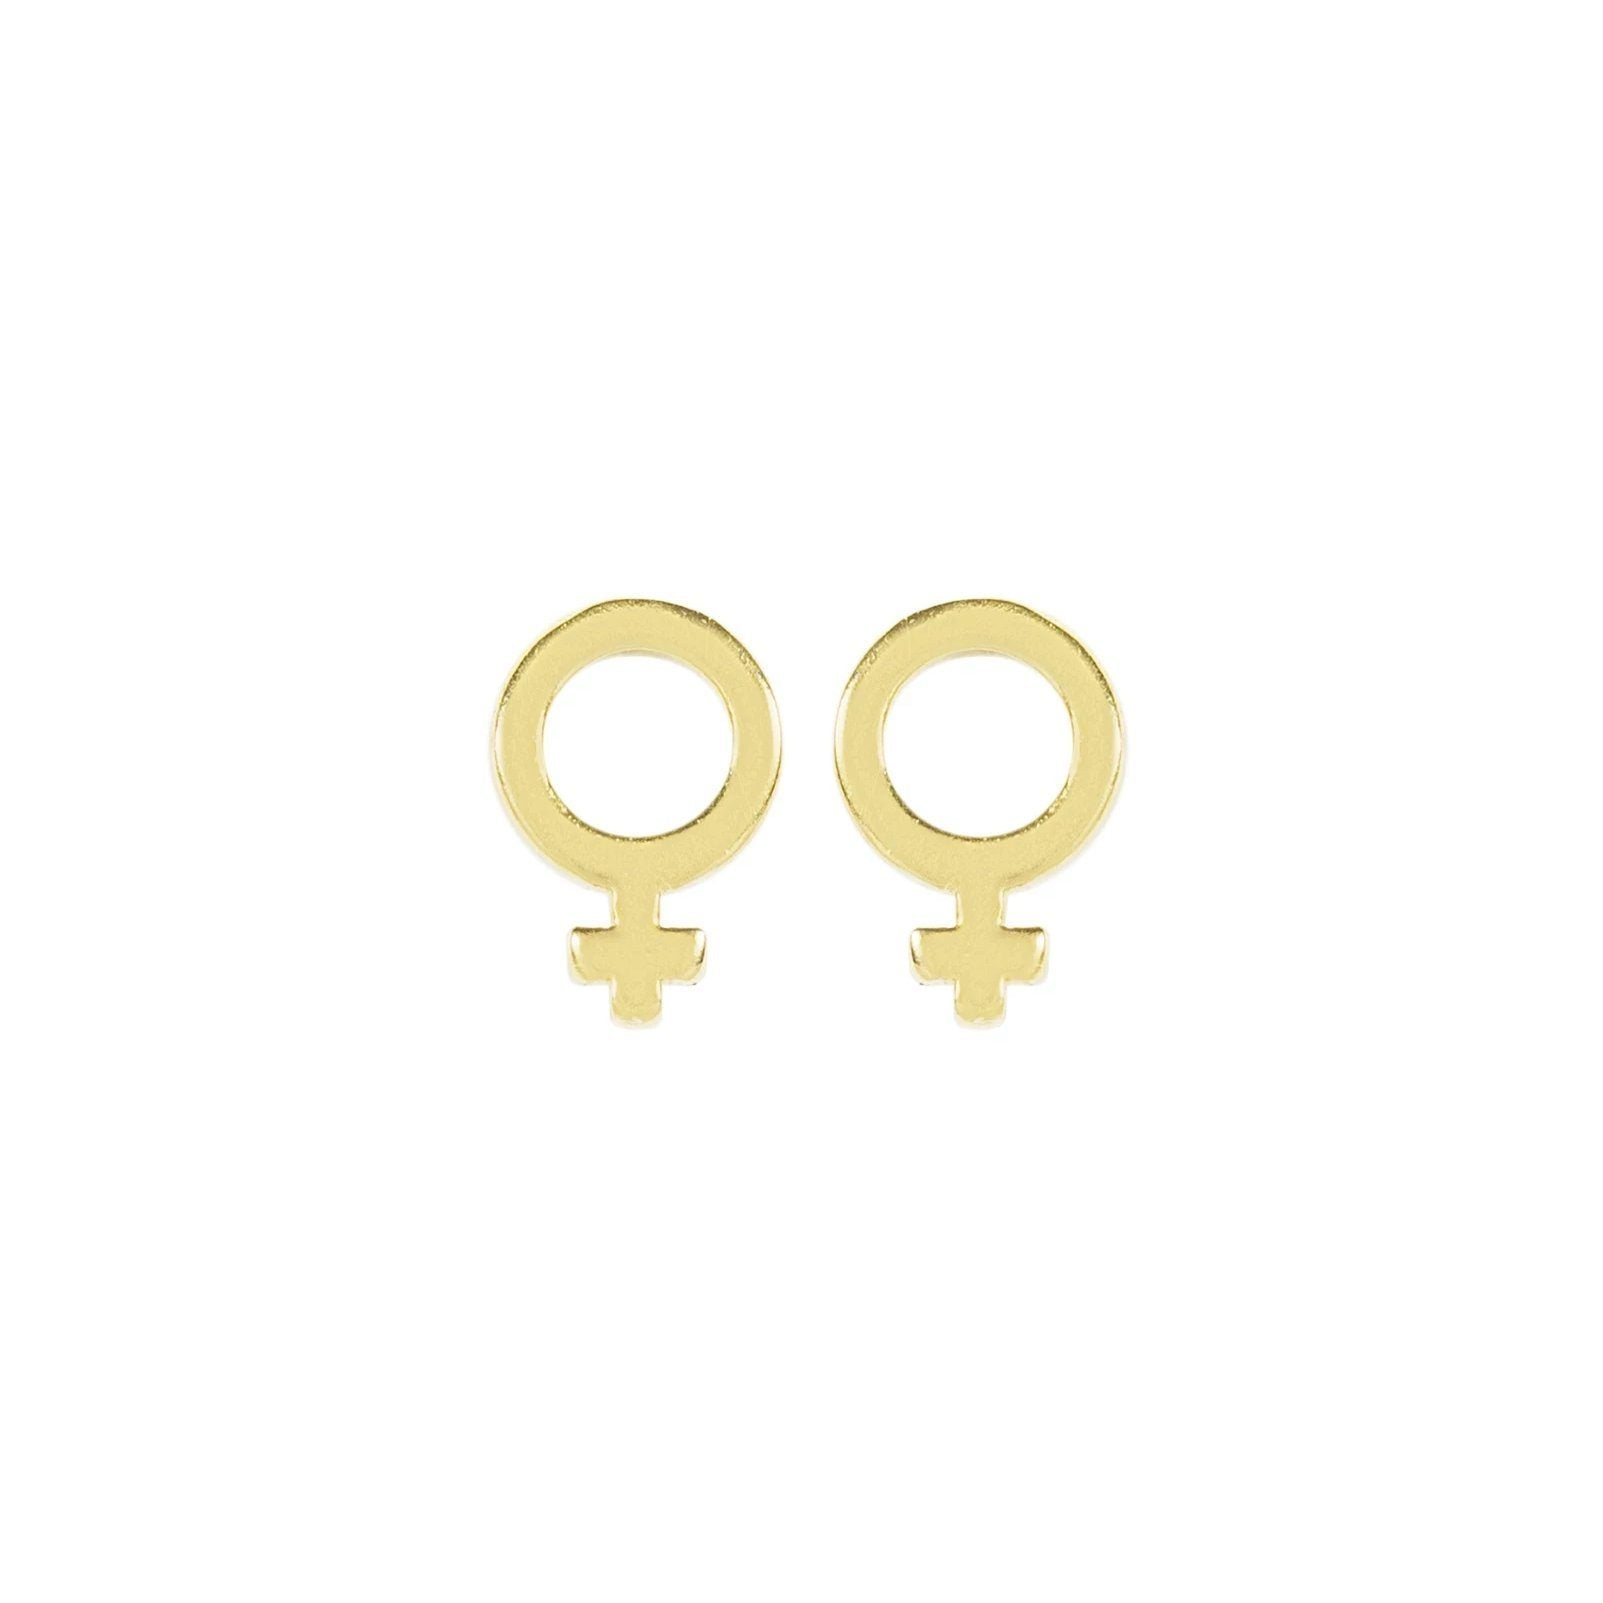 Up close image of the gold Female Symbol Studs against a white background.